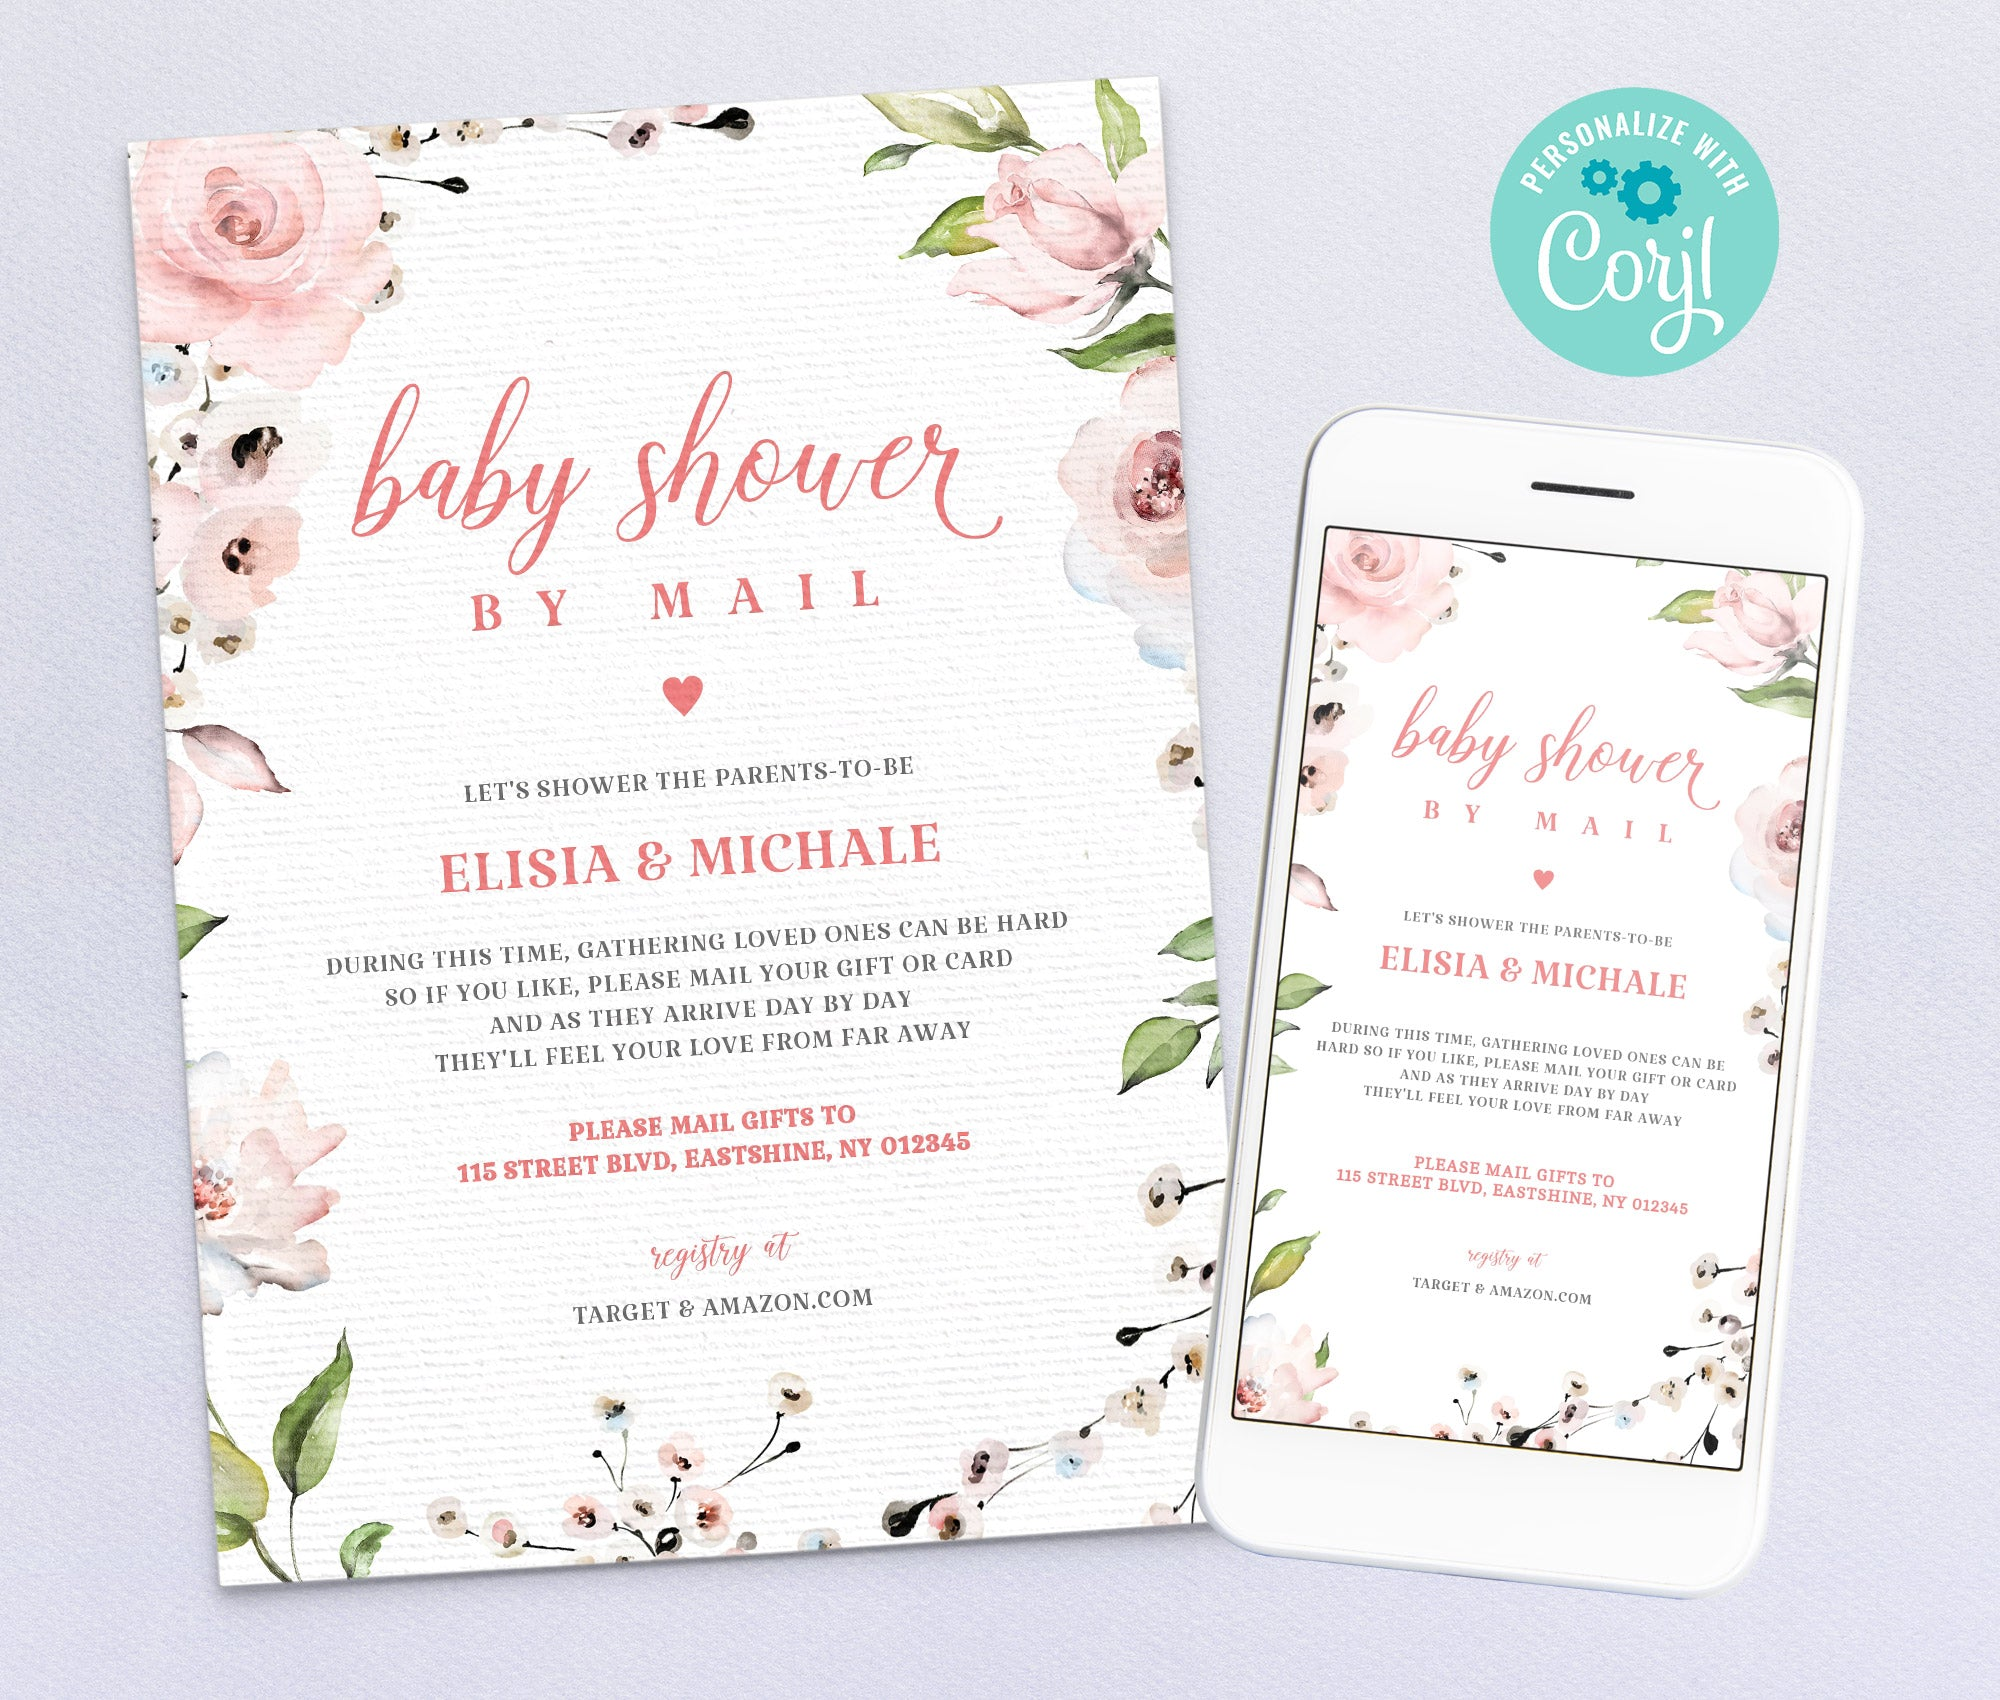 Baby Shower by Mail Invitation 4